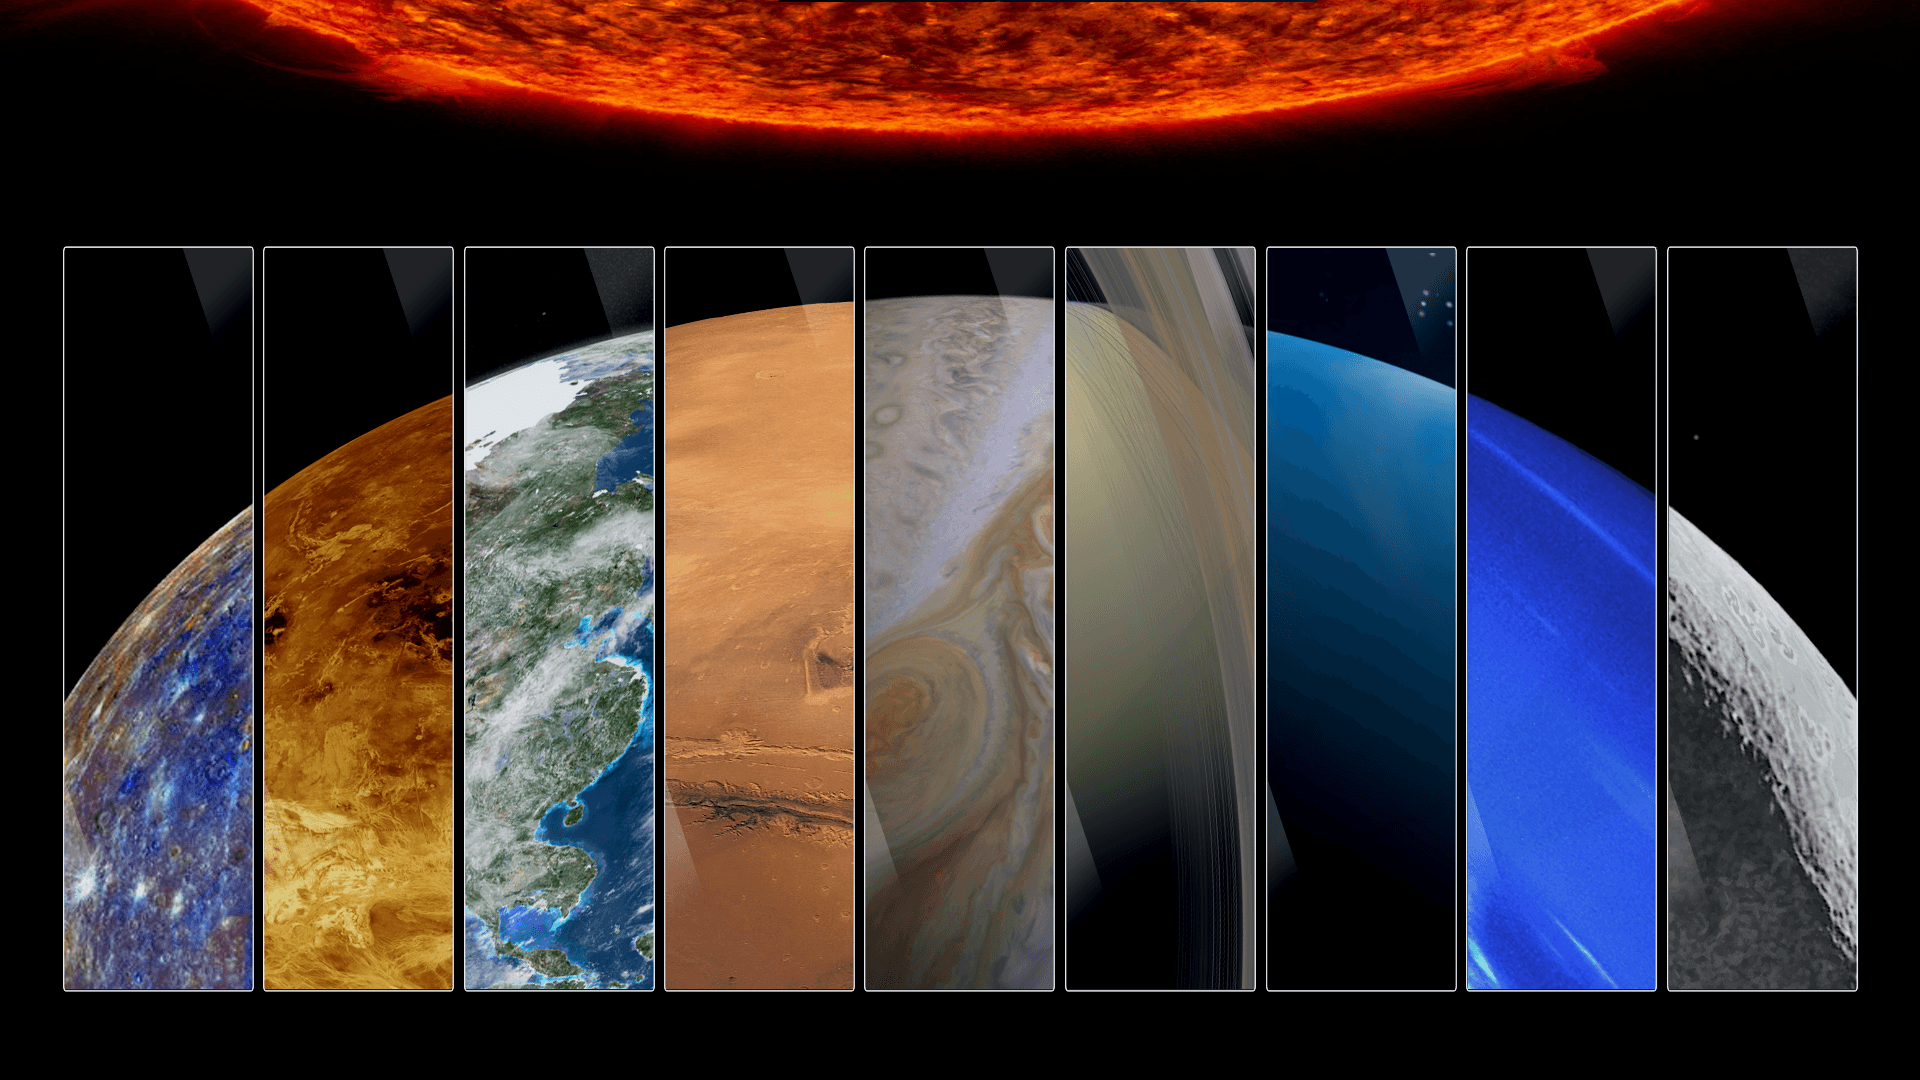 Solar System Planets Wallpapers - Top Free Solar System ...